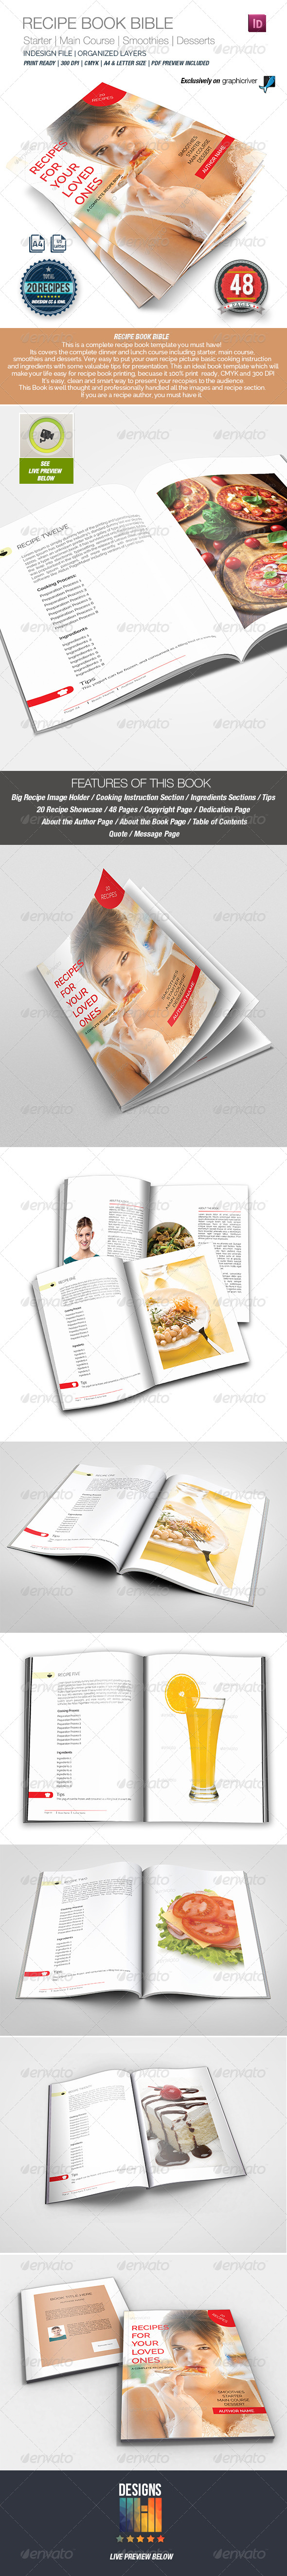 GraphicRiver Recipe Book Bible 8716934